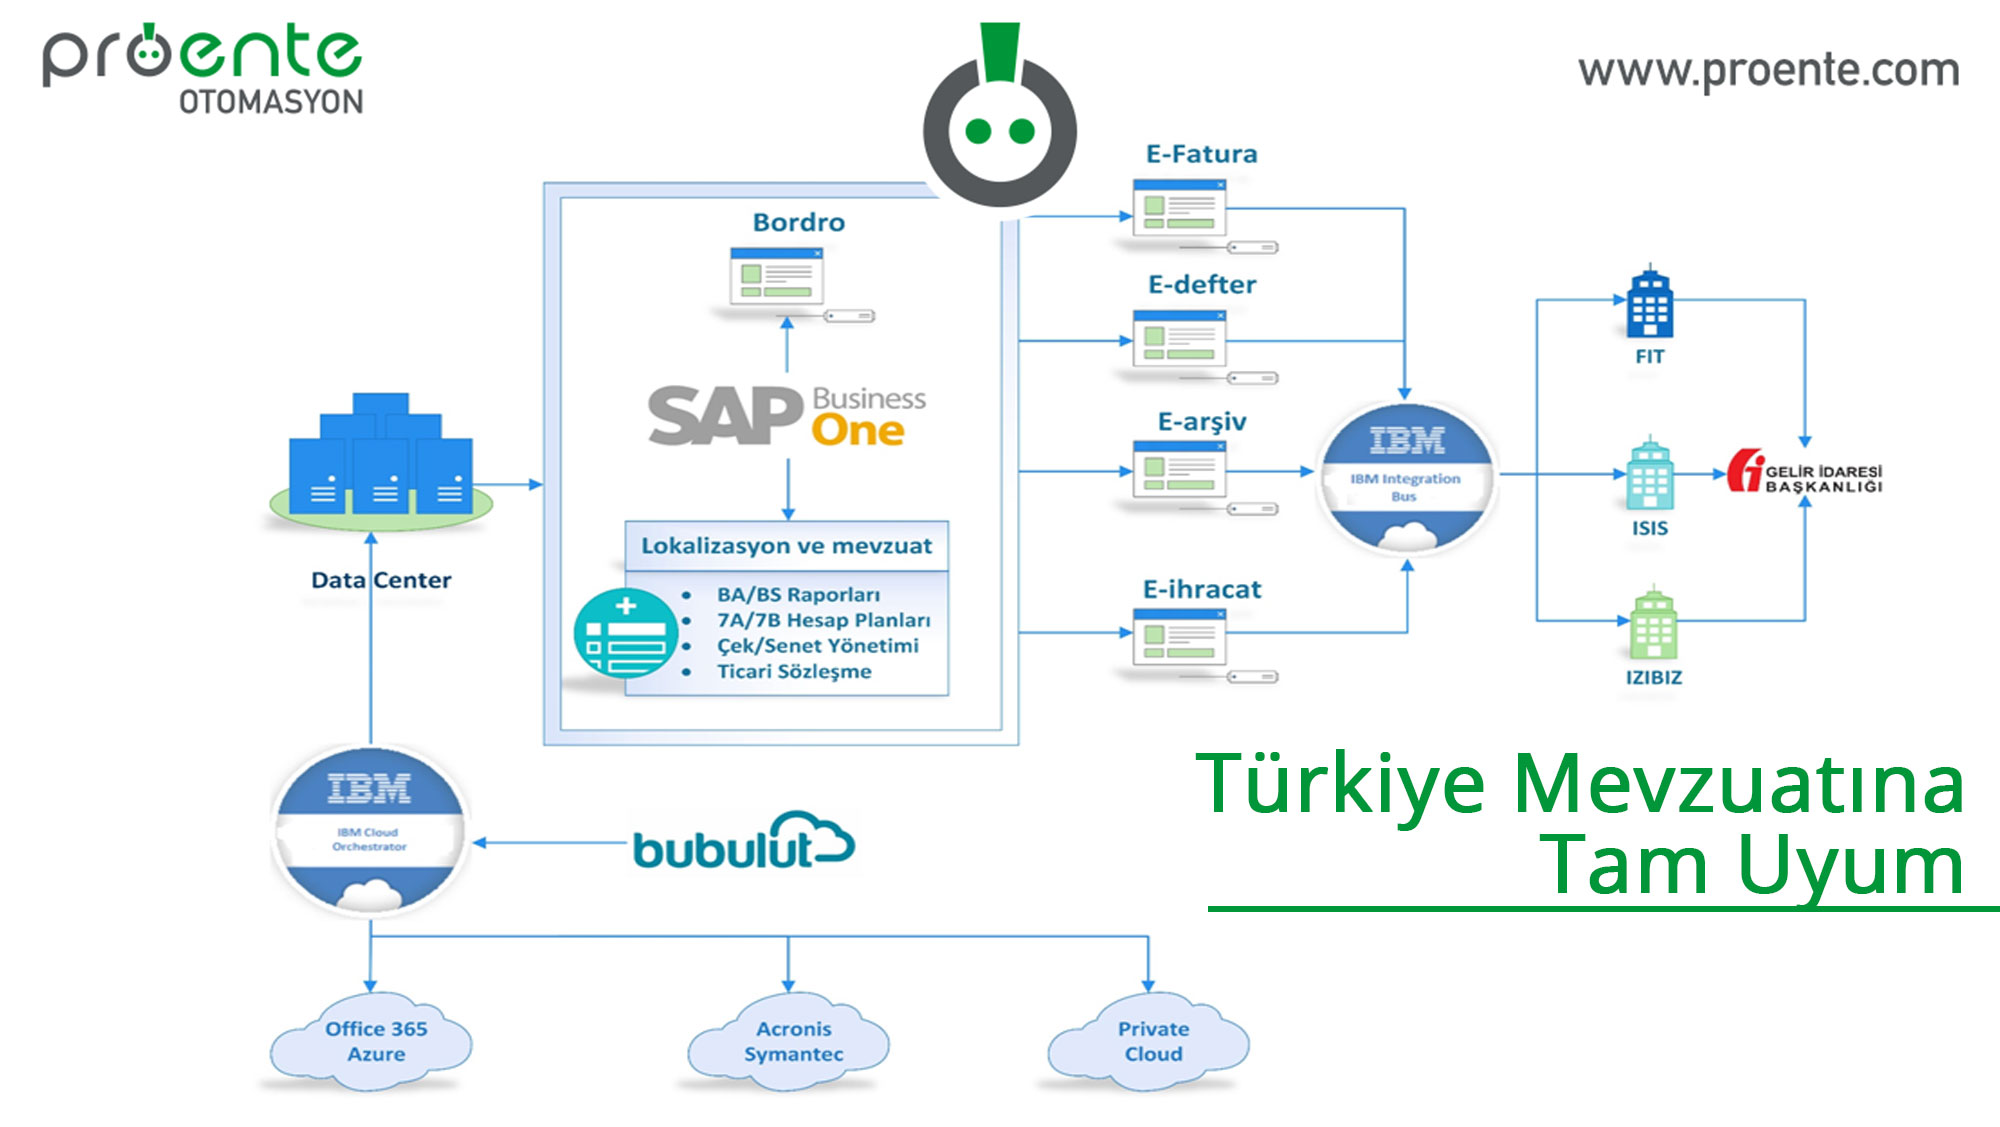 sap turkiye, sap b1, sap business one turkey,